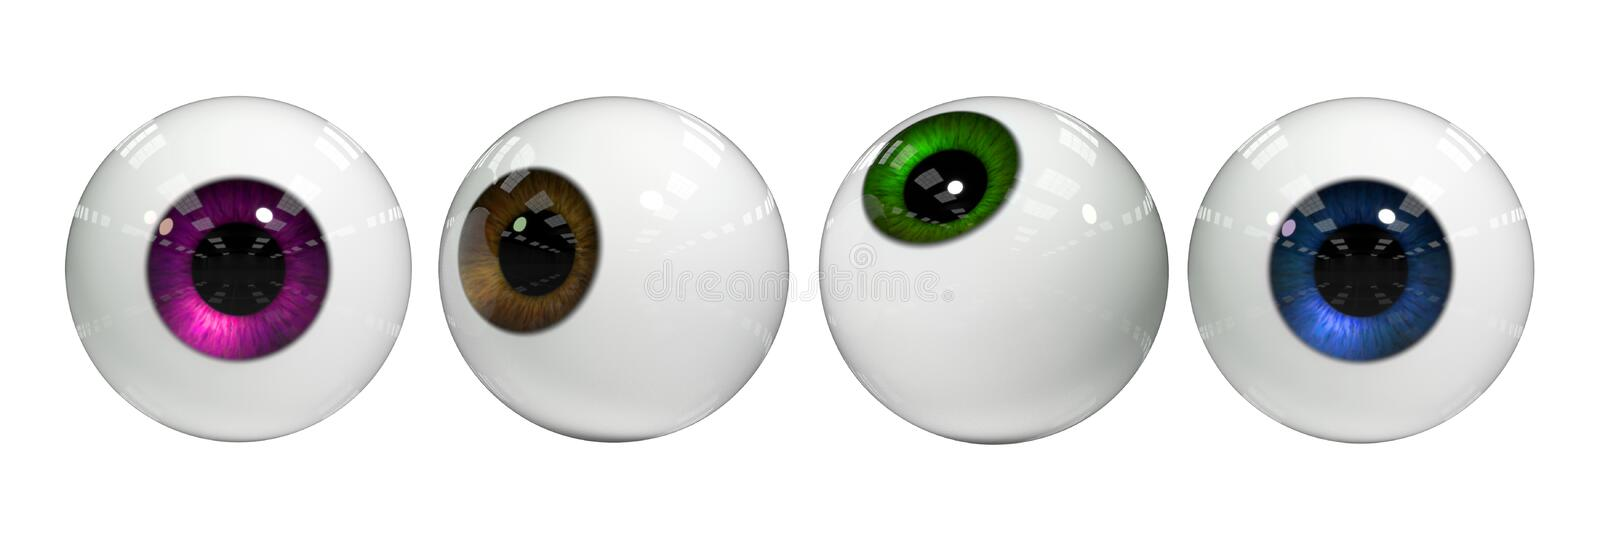 Human eye balls in different intense colours isolated on white background 3d rendering banner. Googly eyes isolated on white ground royalty free illustration